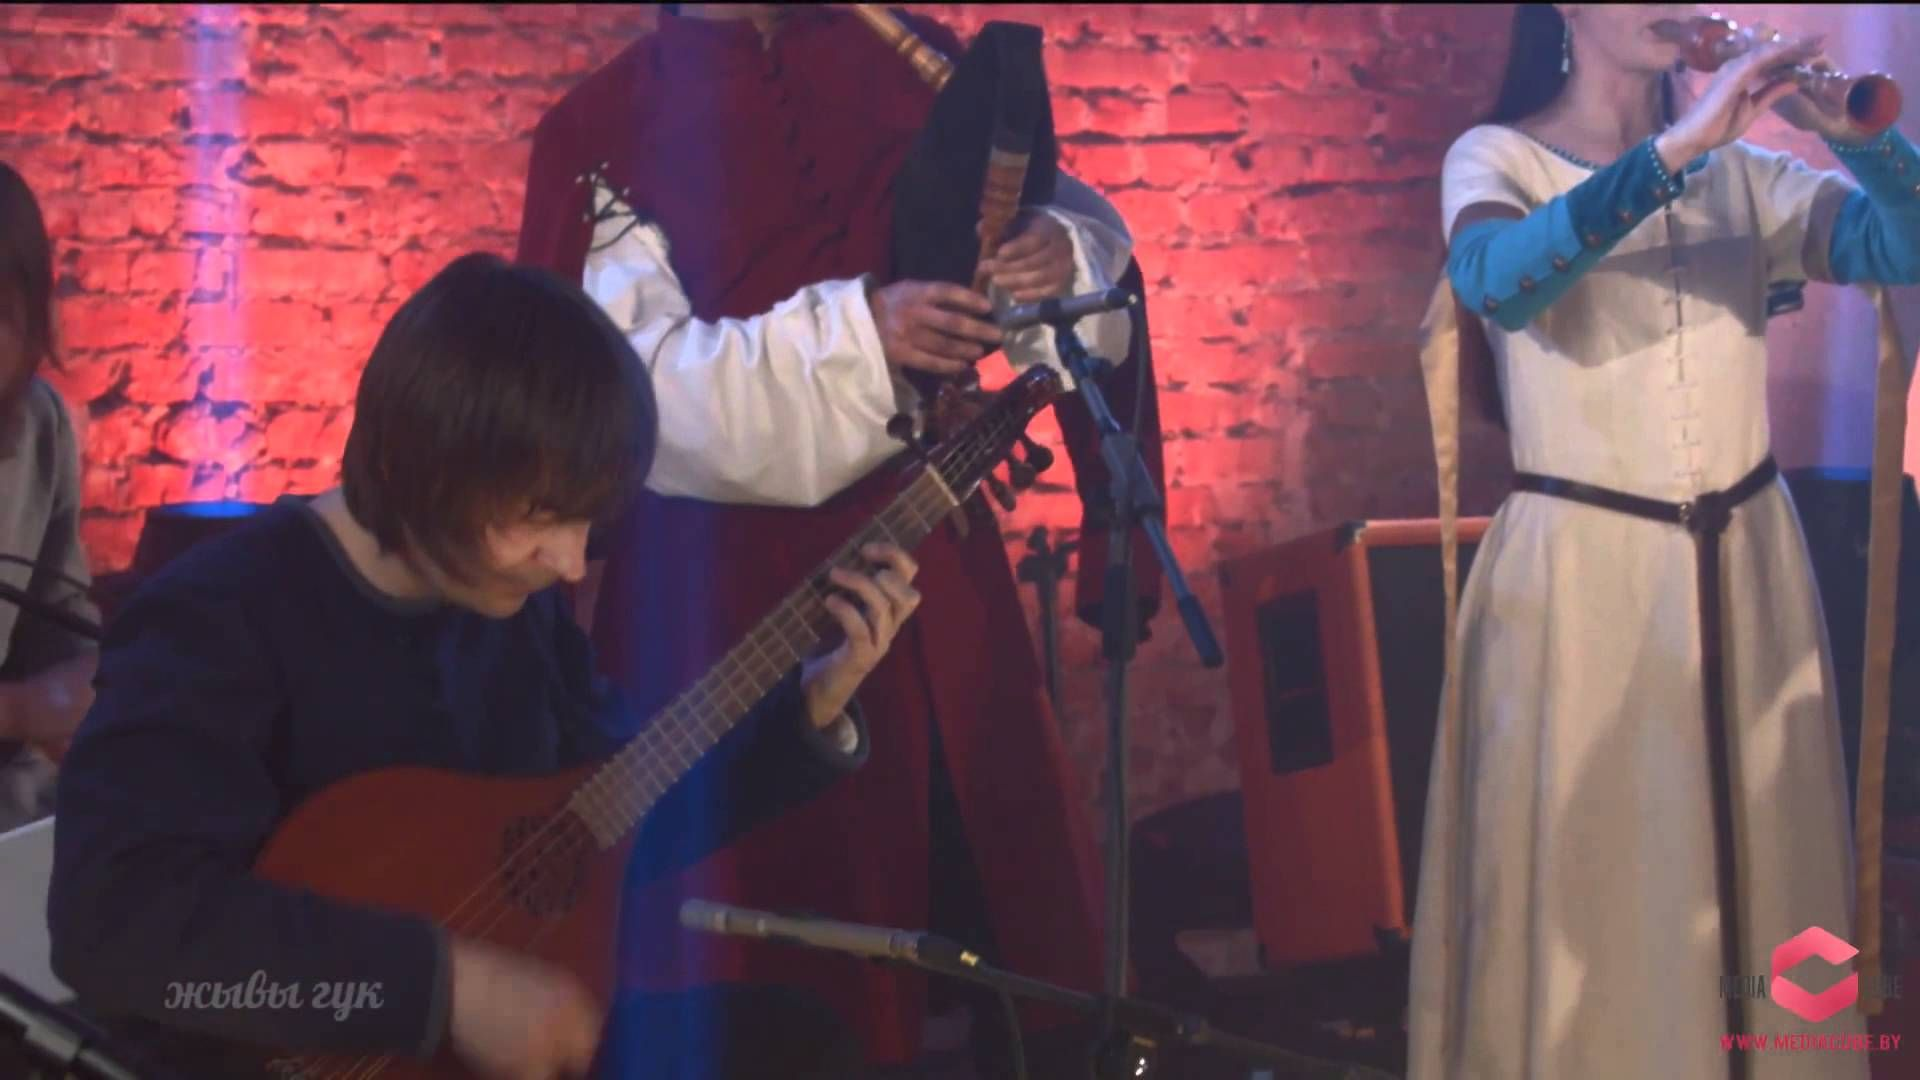 YOU can help us record a full album of medieval covers